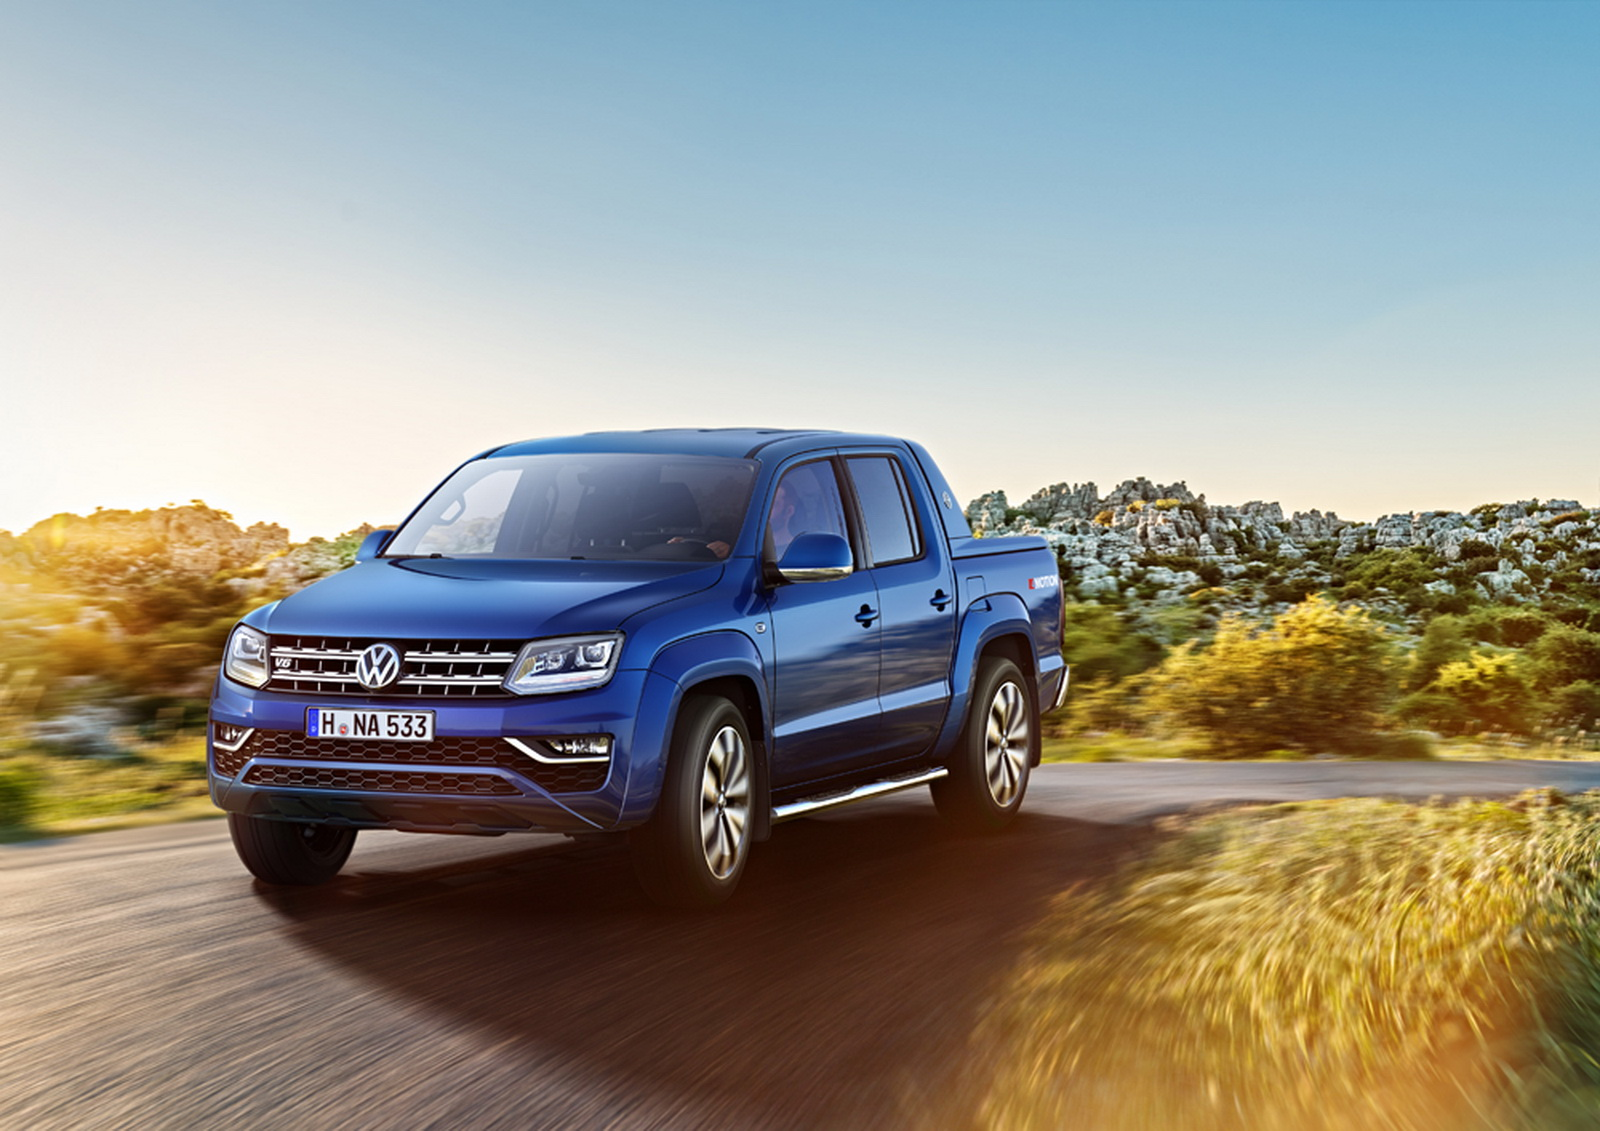 VW-Amarok-facelift-01 (6)